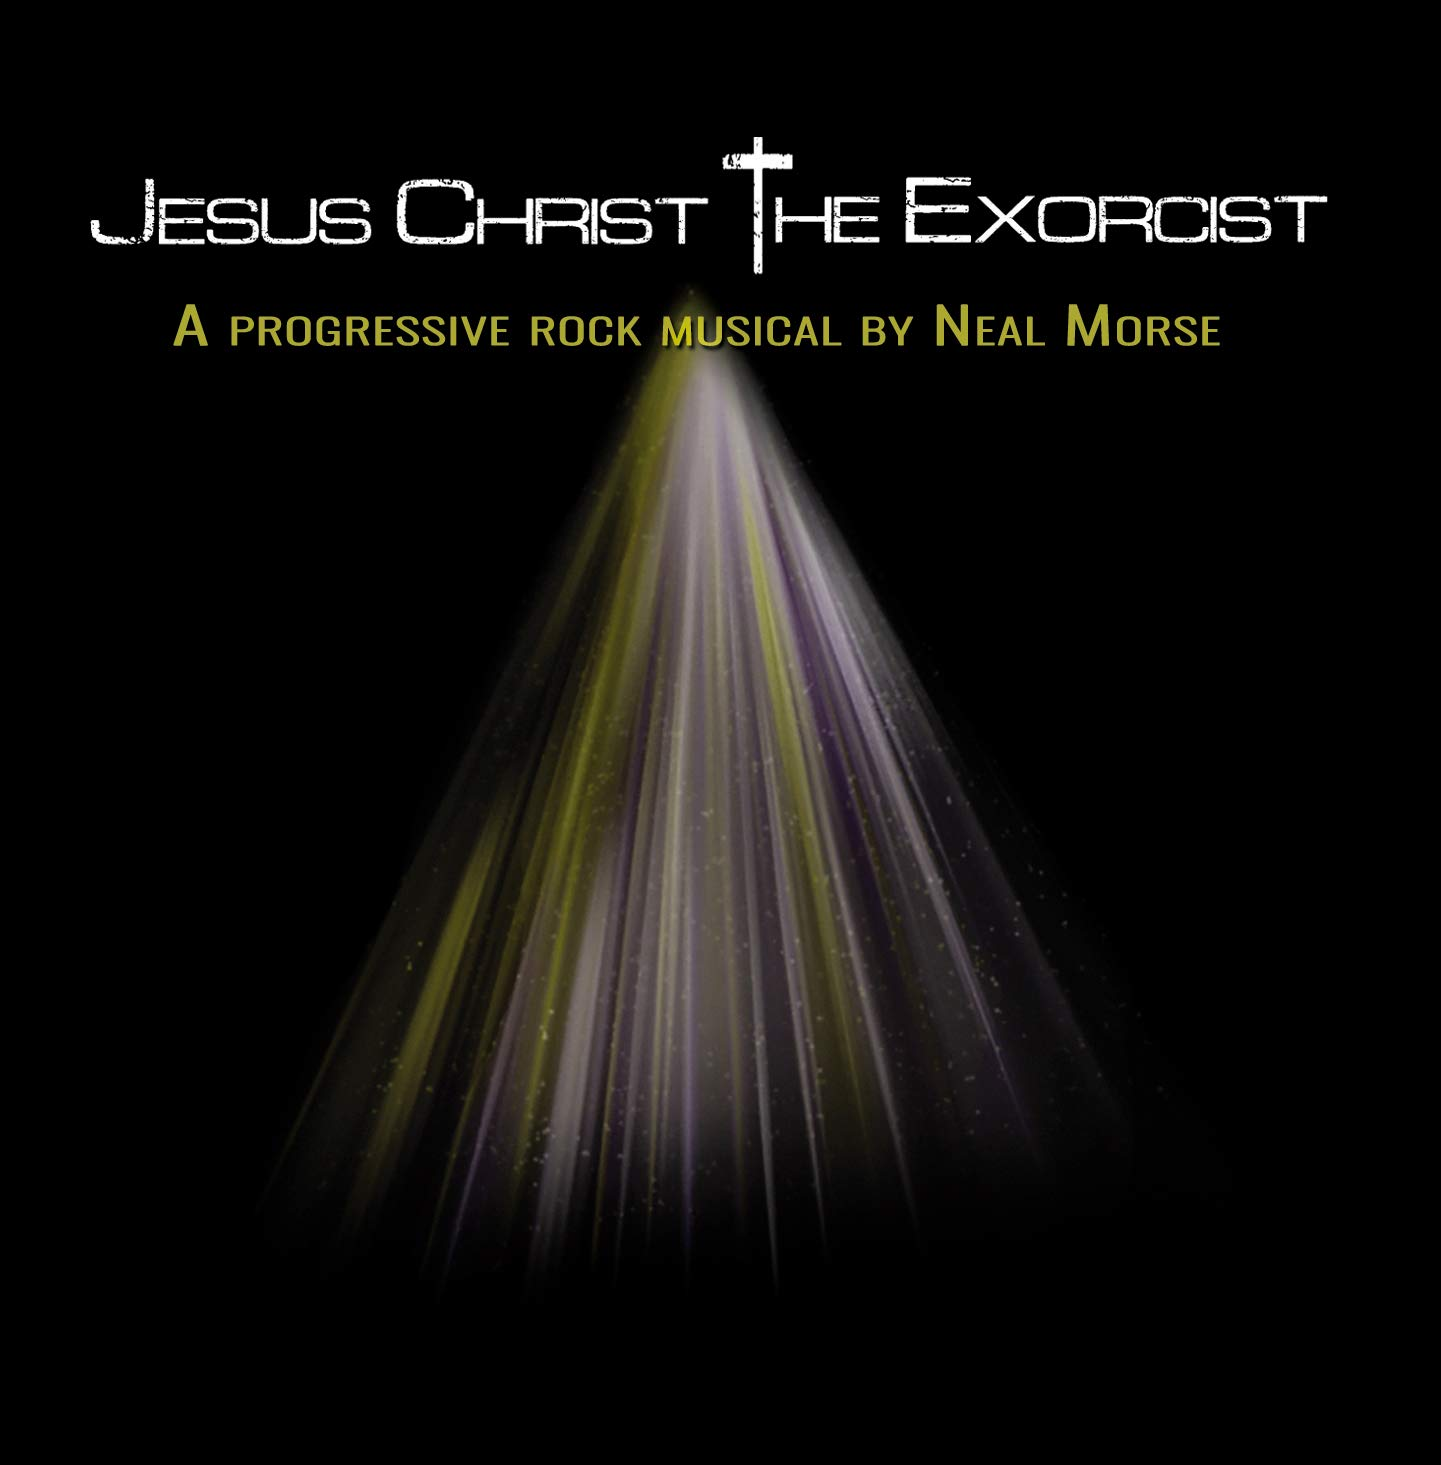 Jesus Christ - The Exorcist